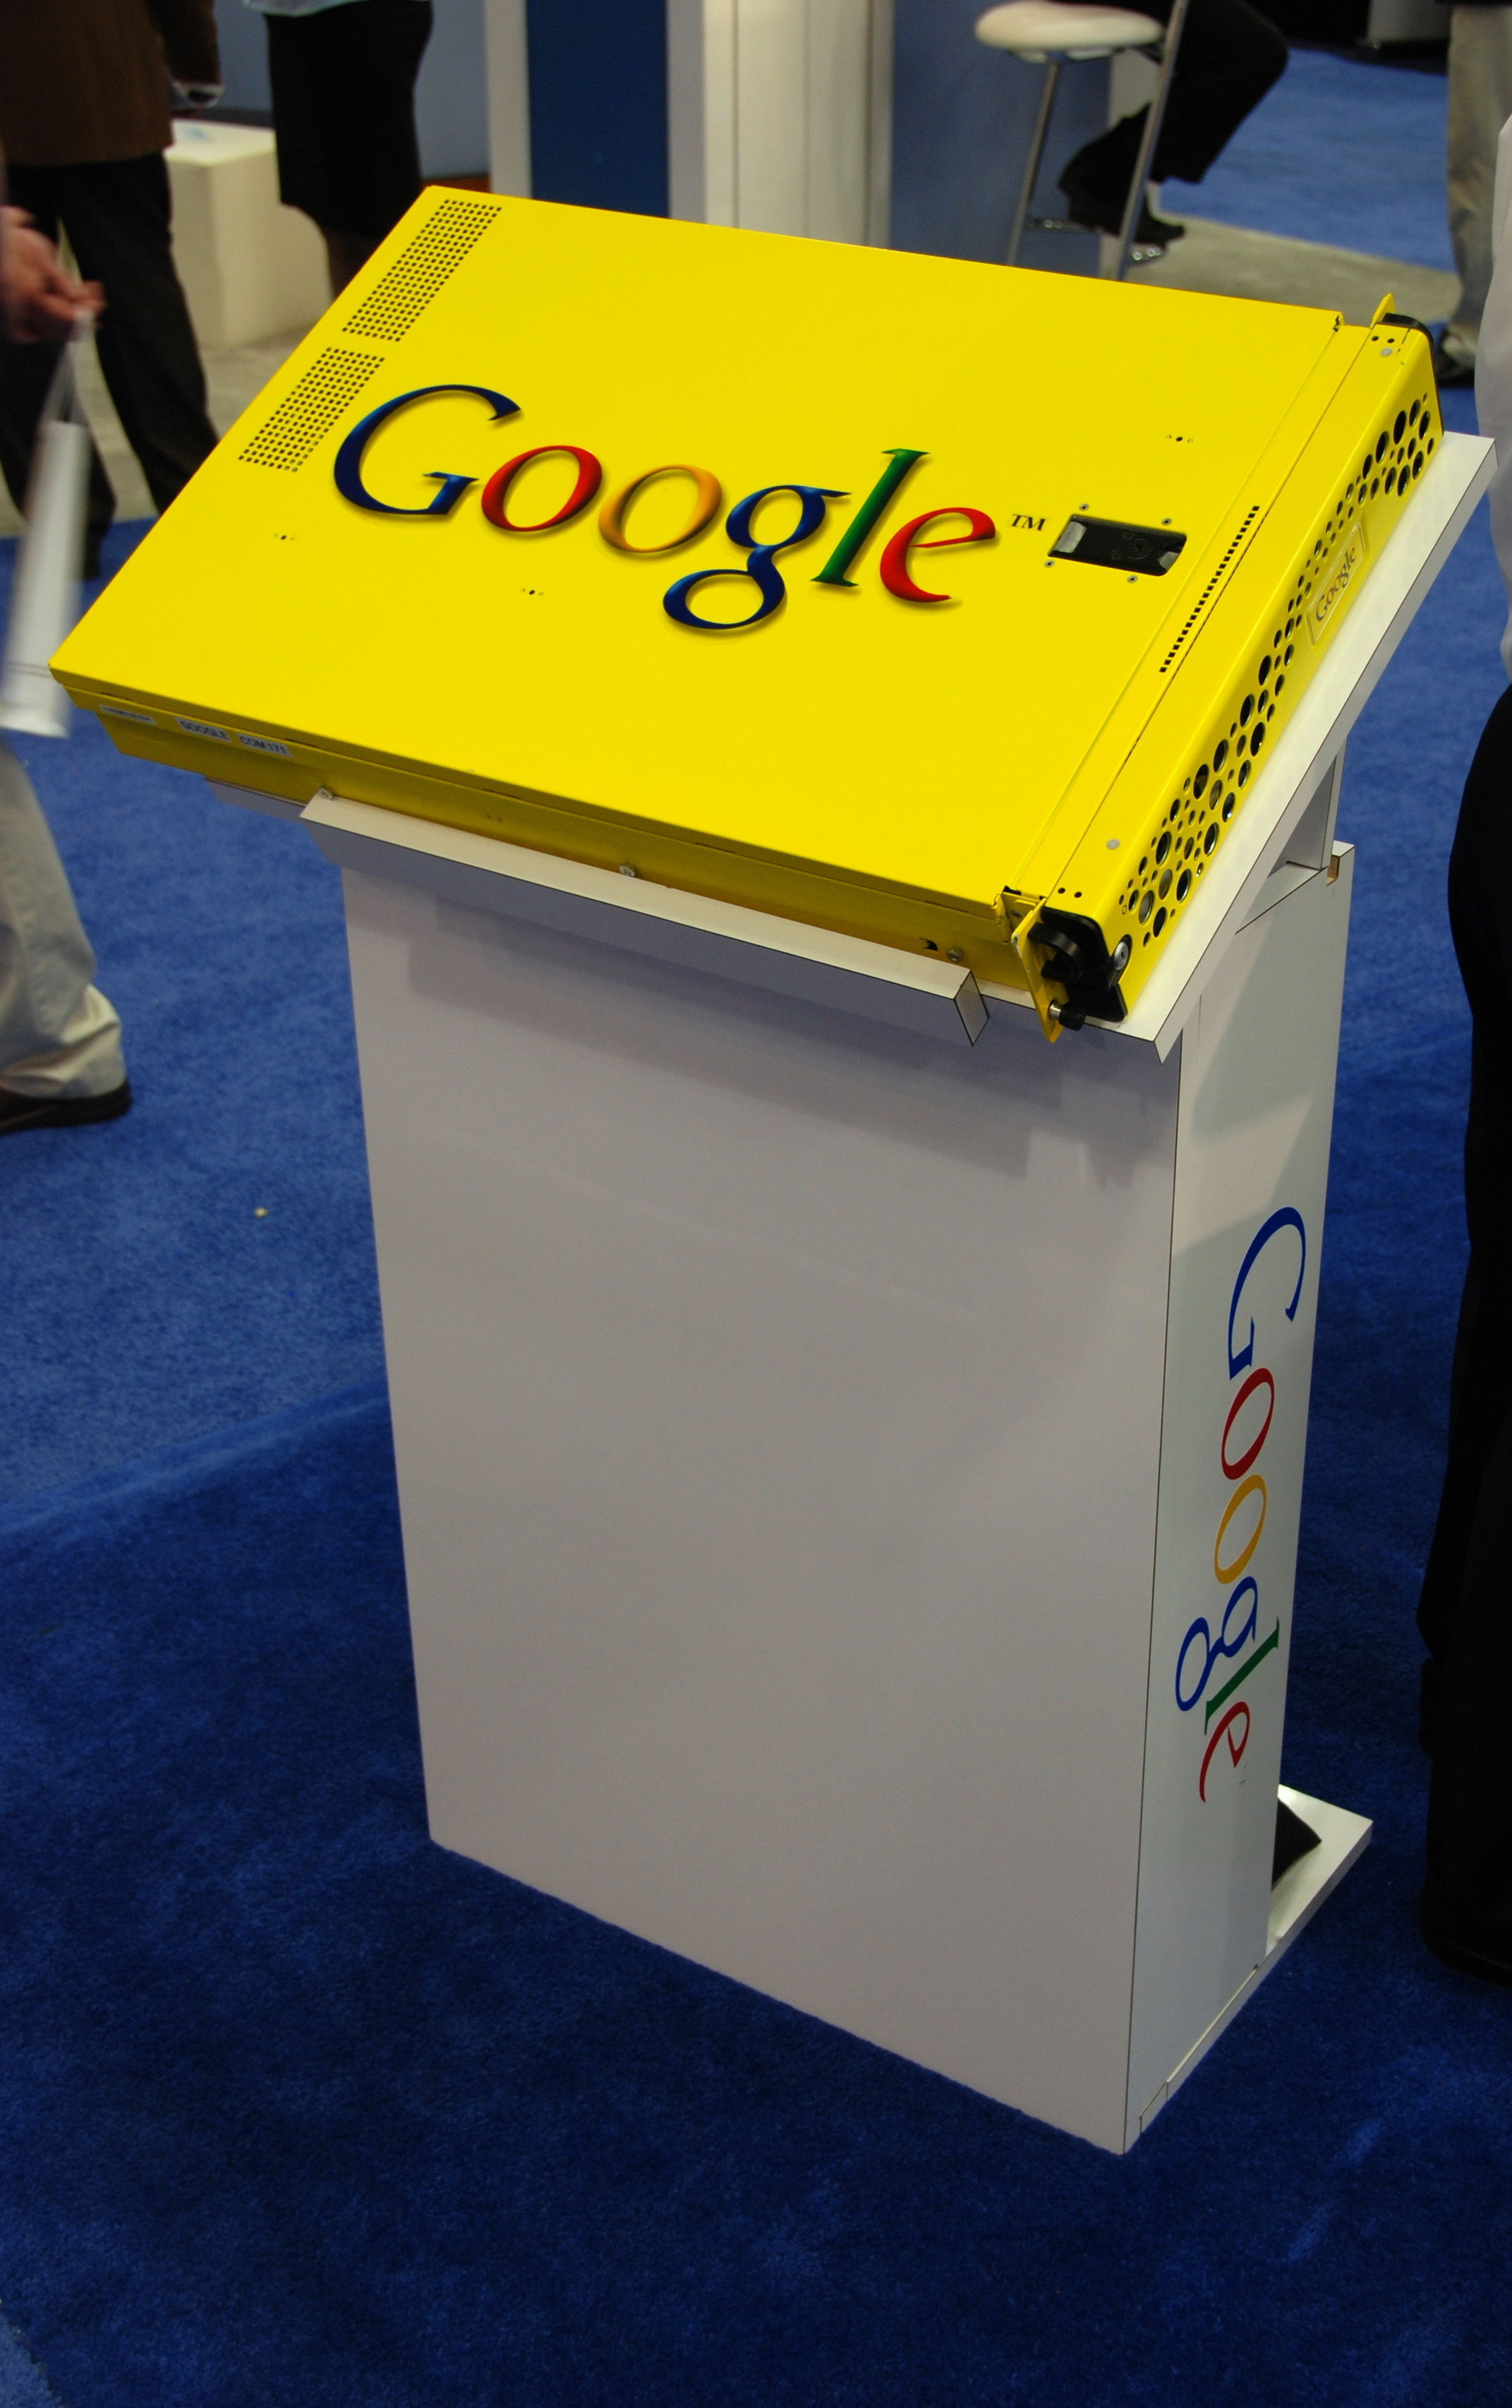 Google's search appliance